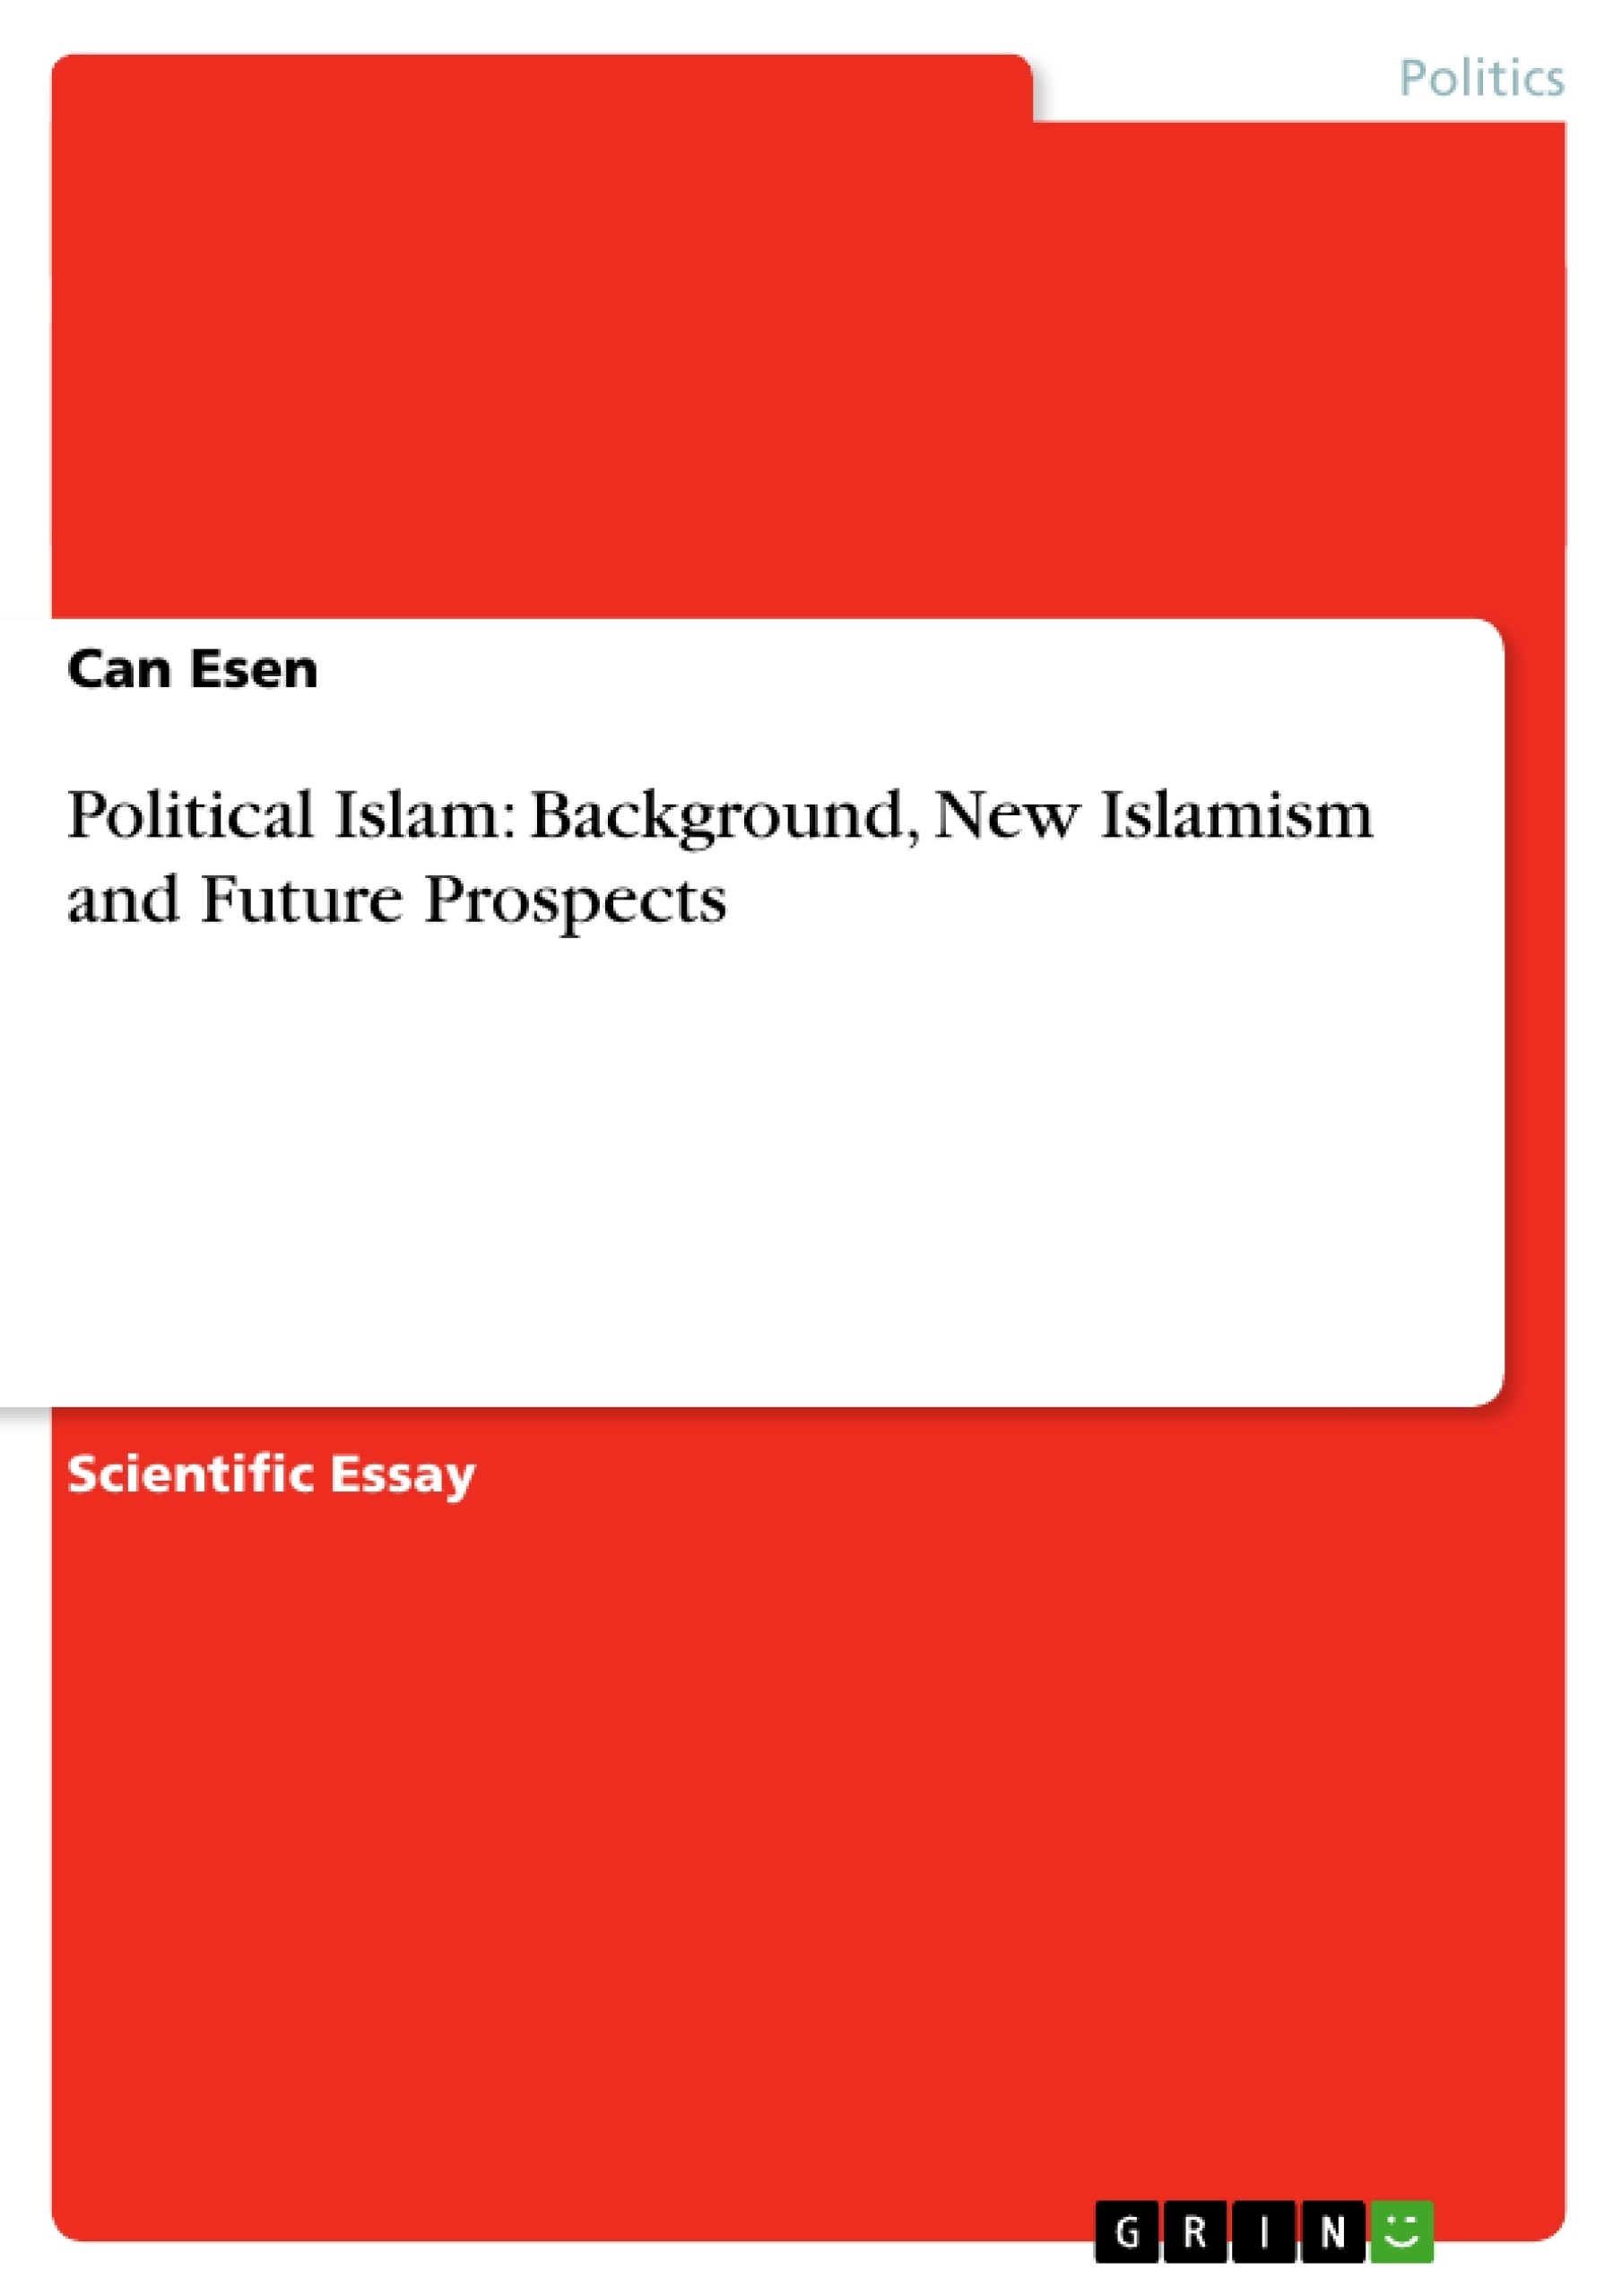 Title: Political Islam: Background, New Islamism and Future Prospects